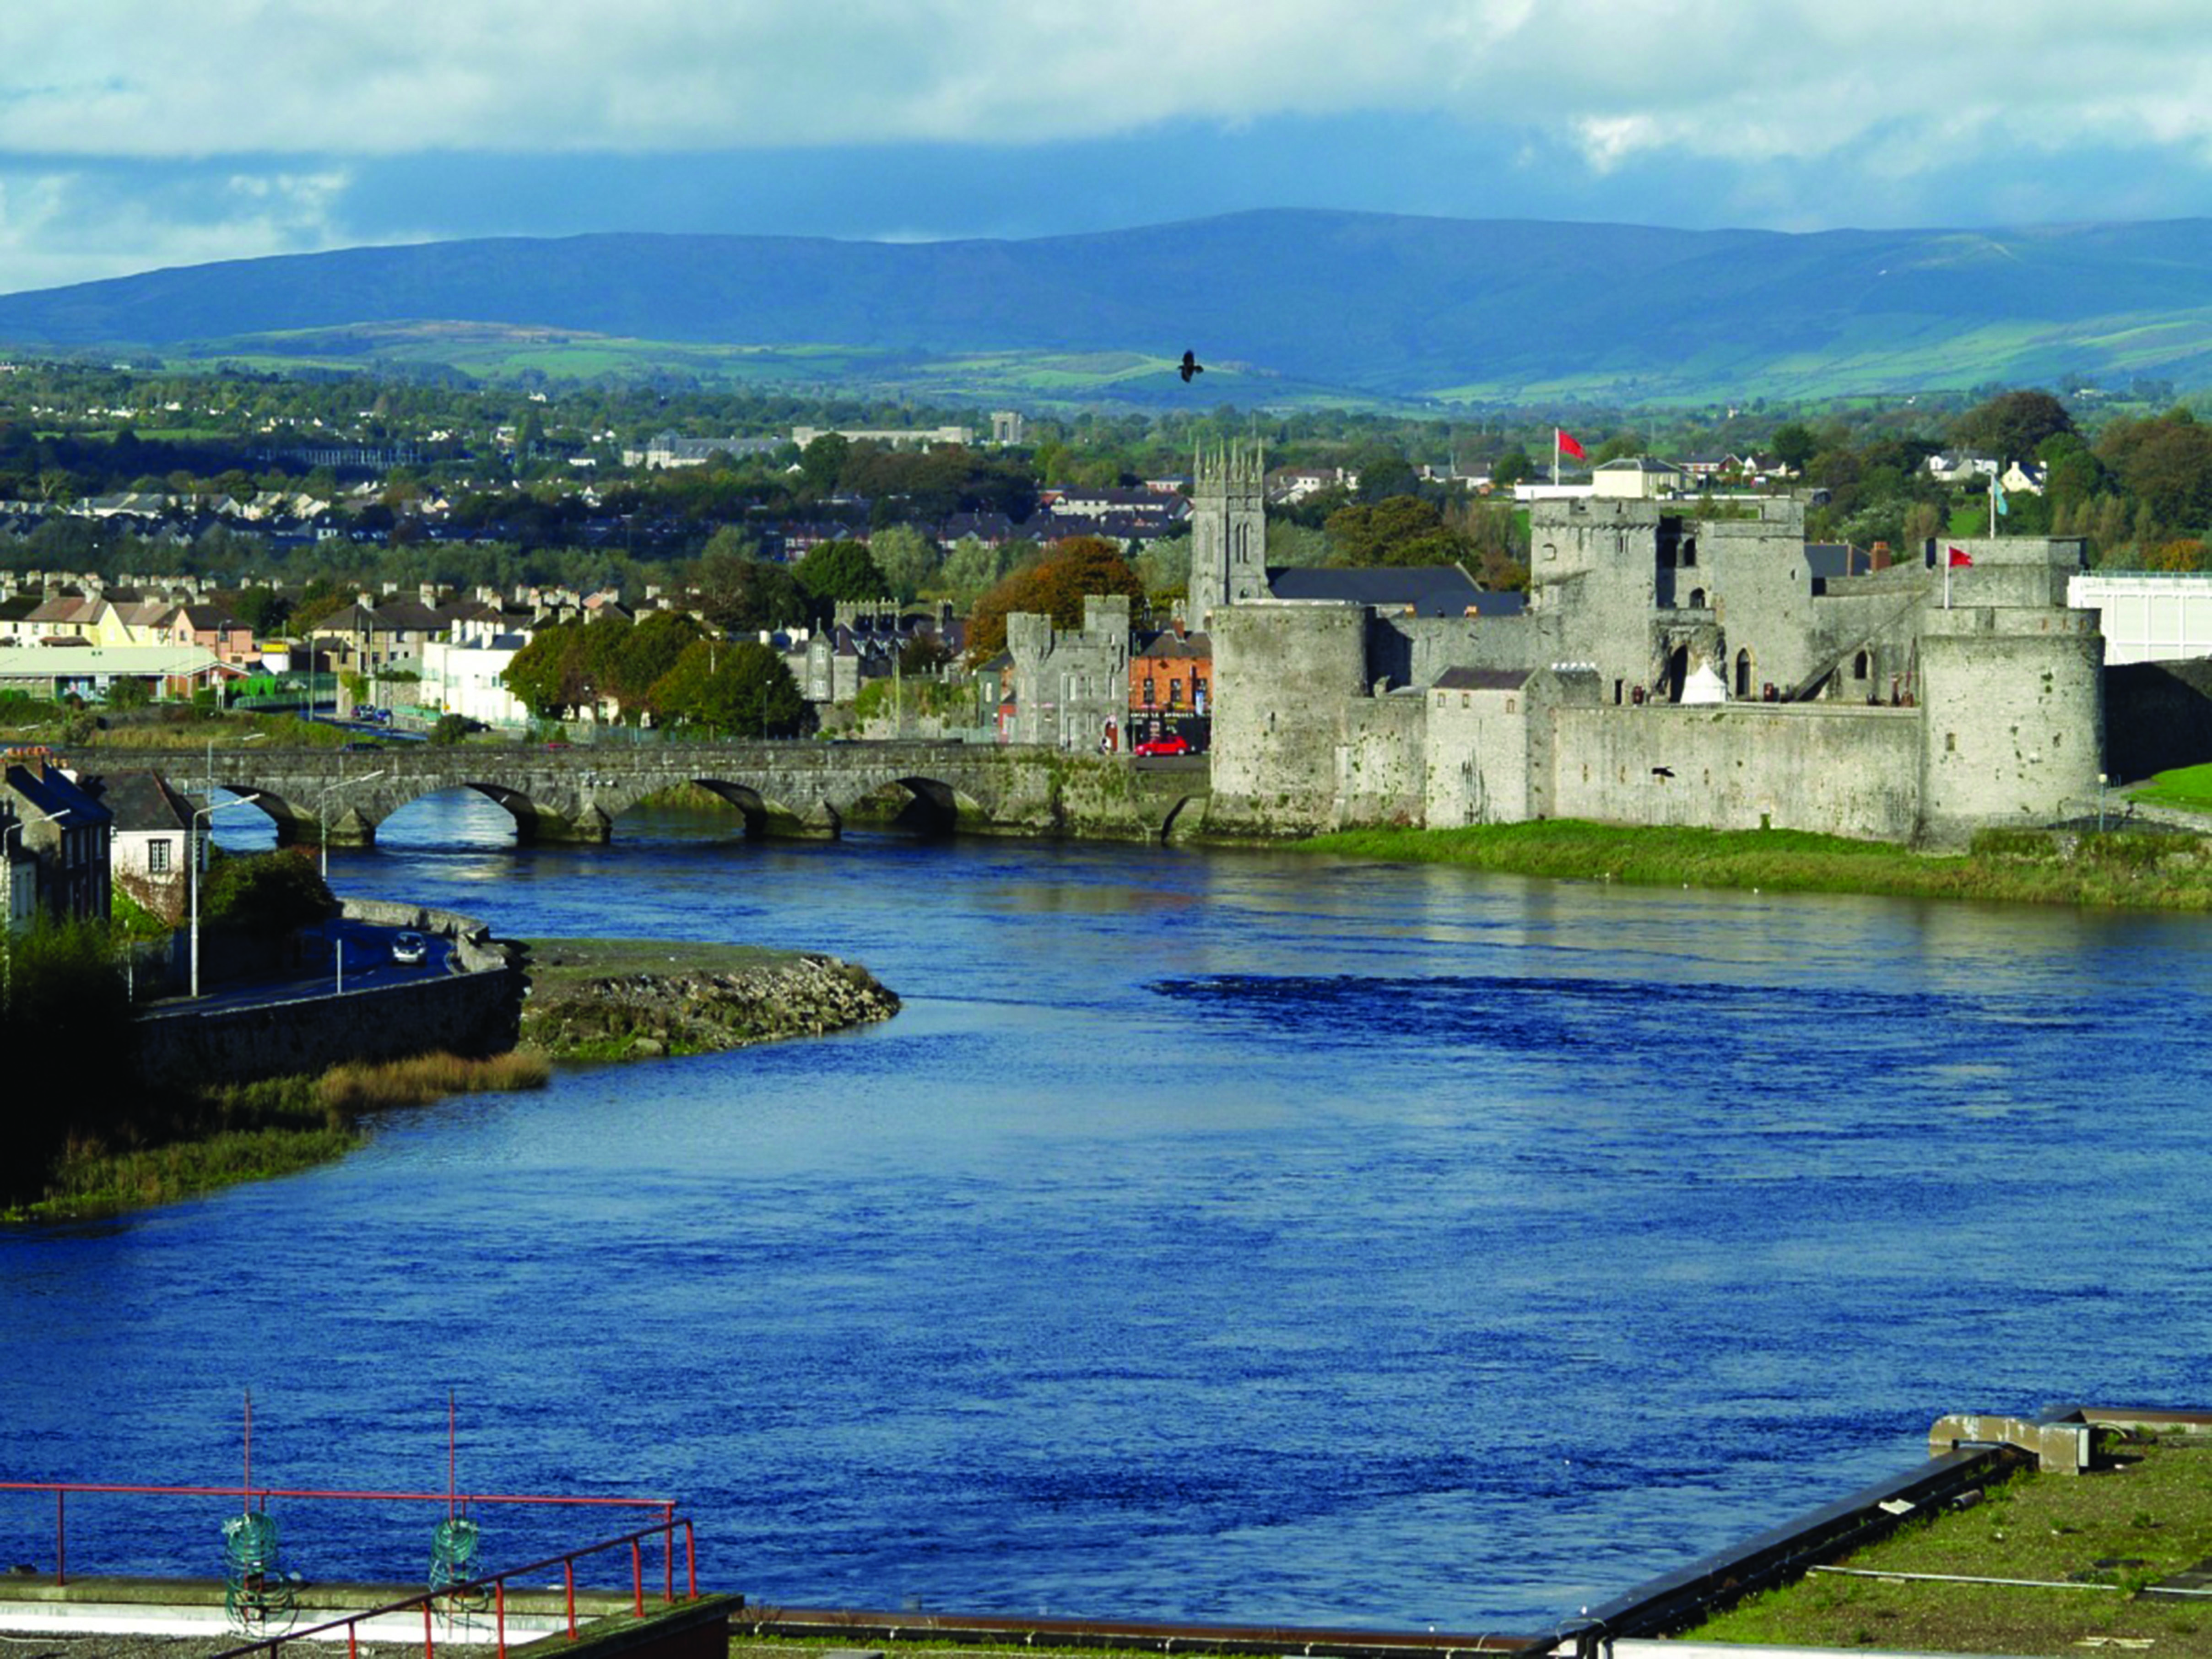 limerick-ireland-a-city-rich-in-culture-and-history-ireland-limerick-238